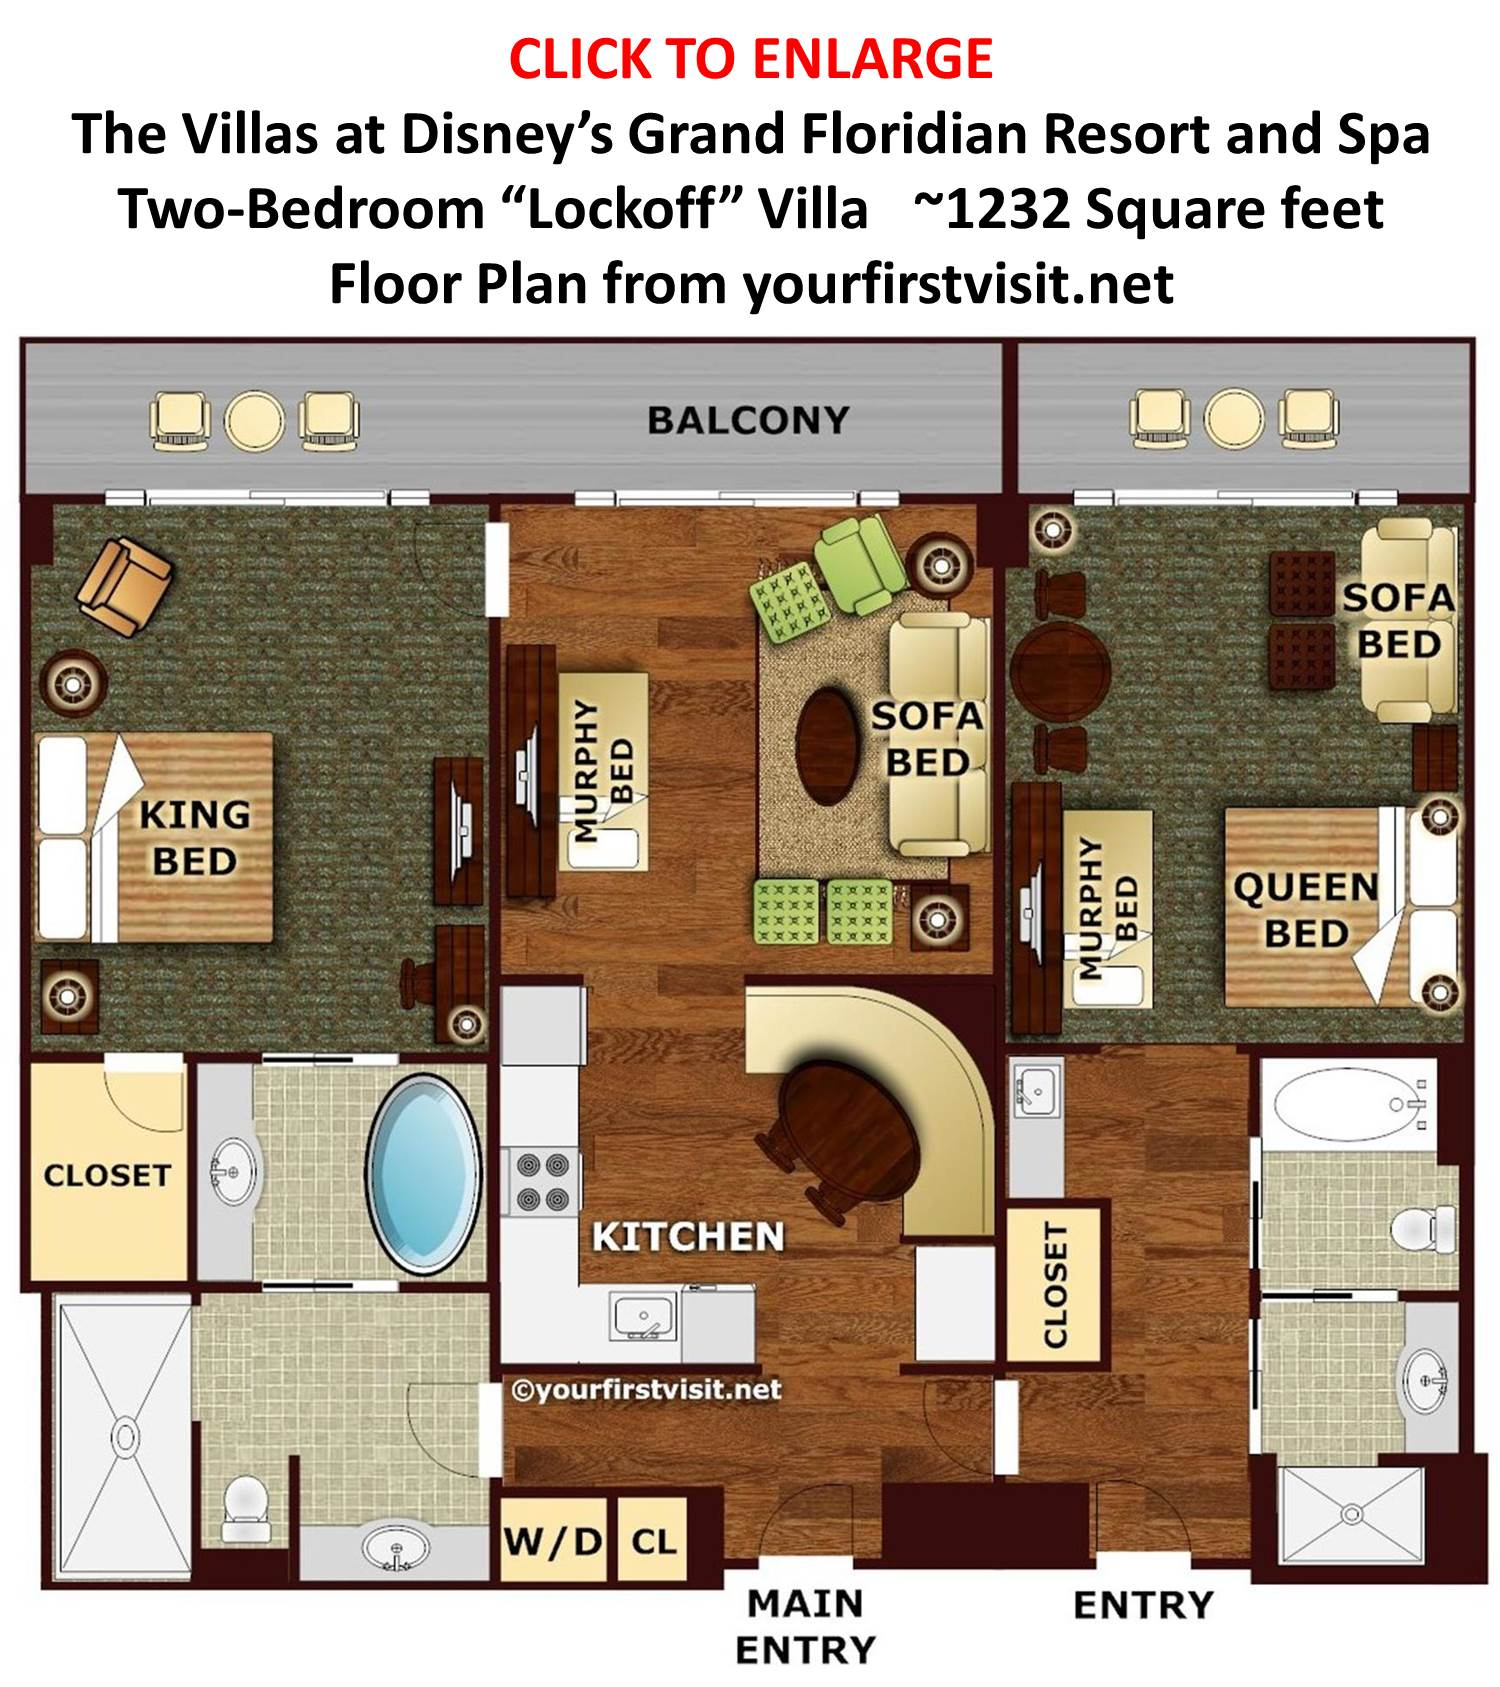 Theming And Accommodations At The Villas At Disney S Grand